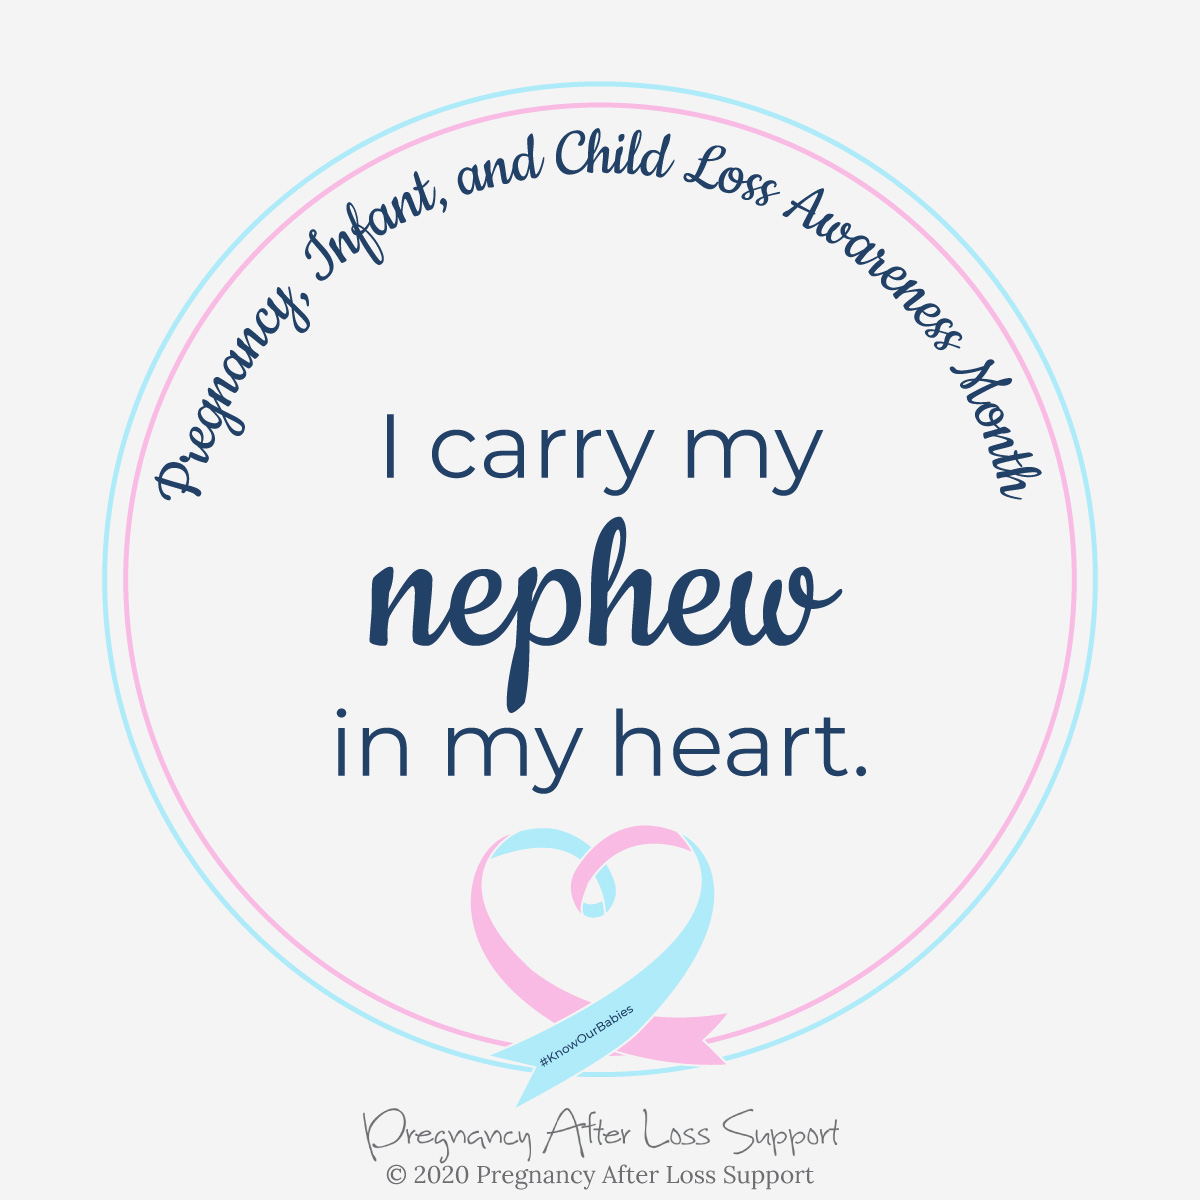 I carry my nephew in my heart - Pregnancy, Infant, and Child Loss Awareness Month